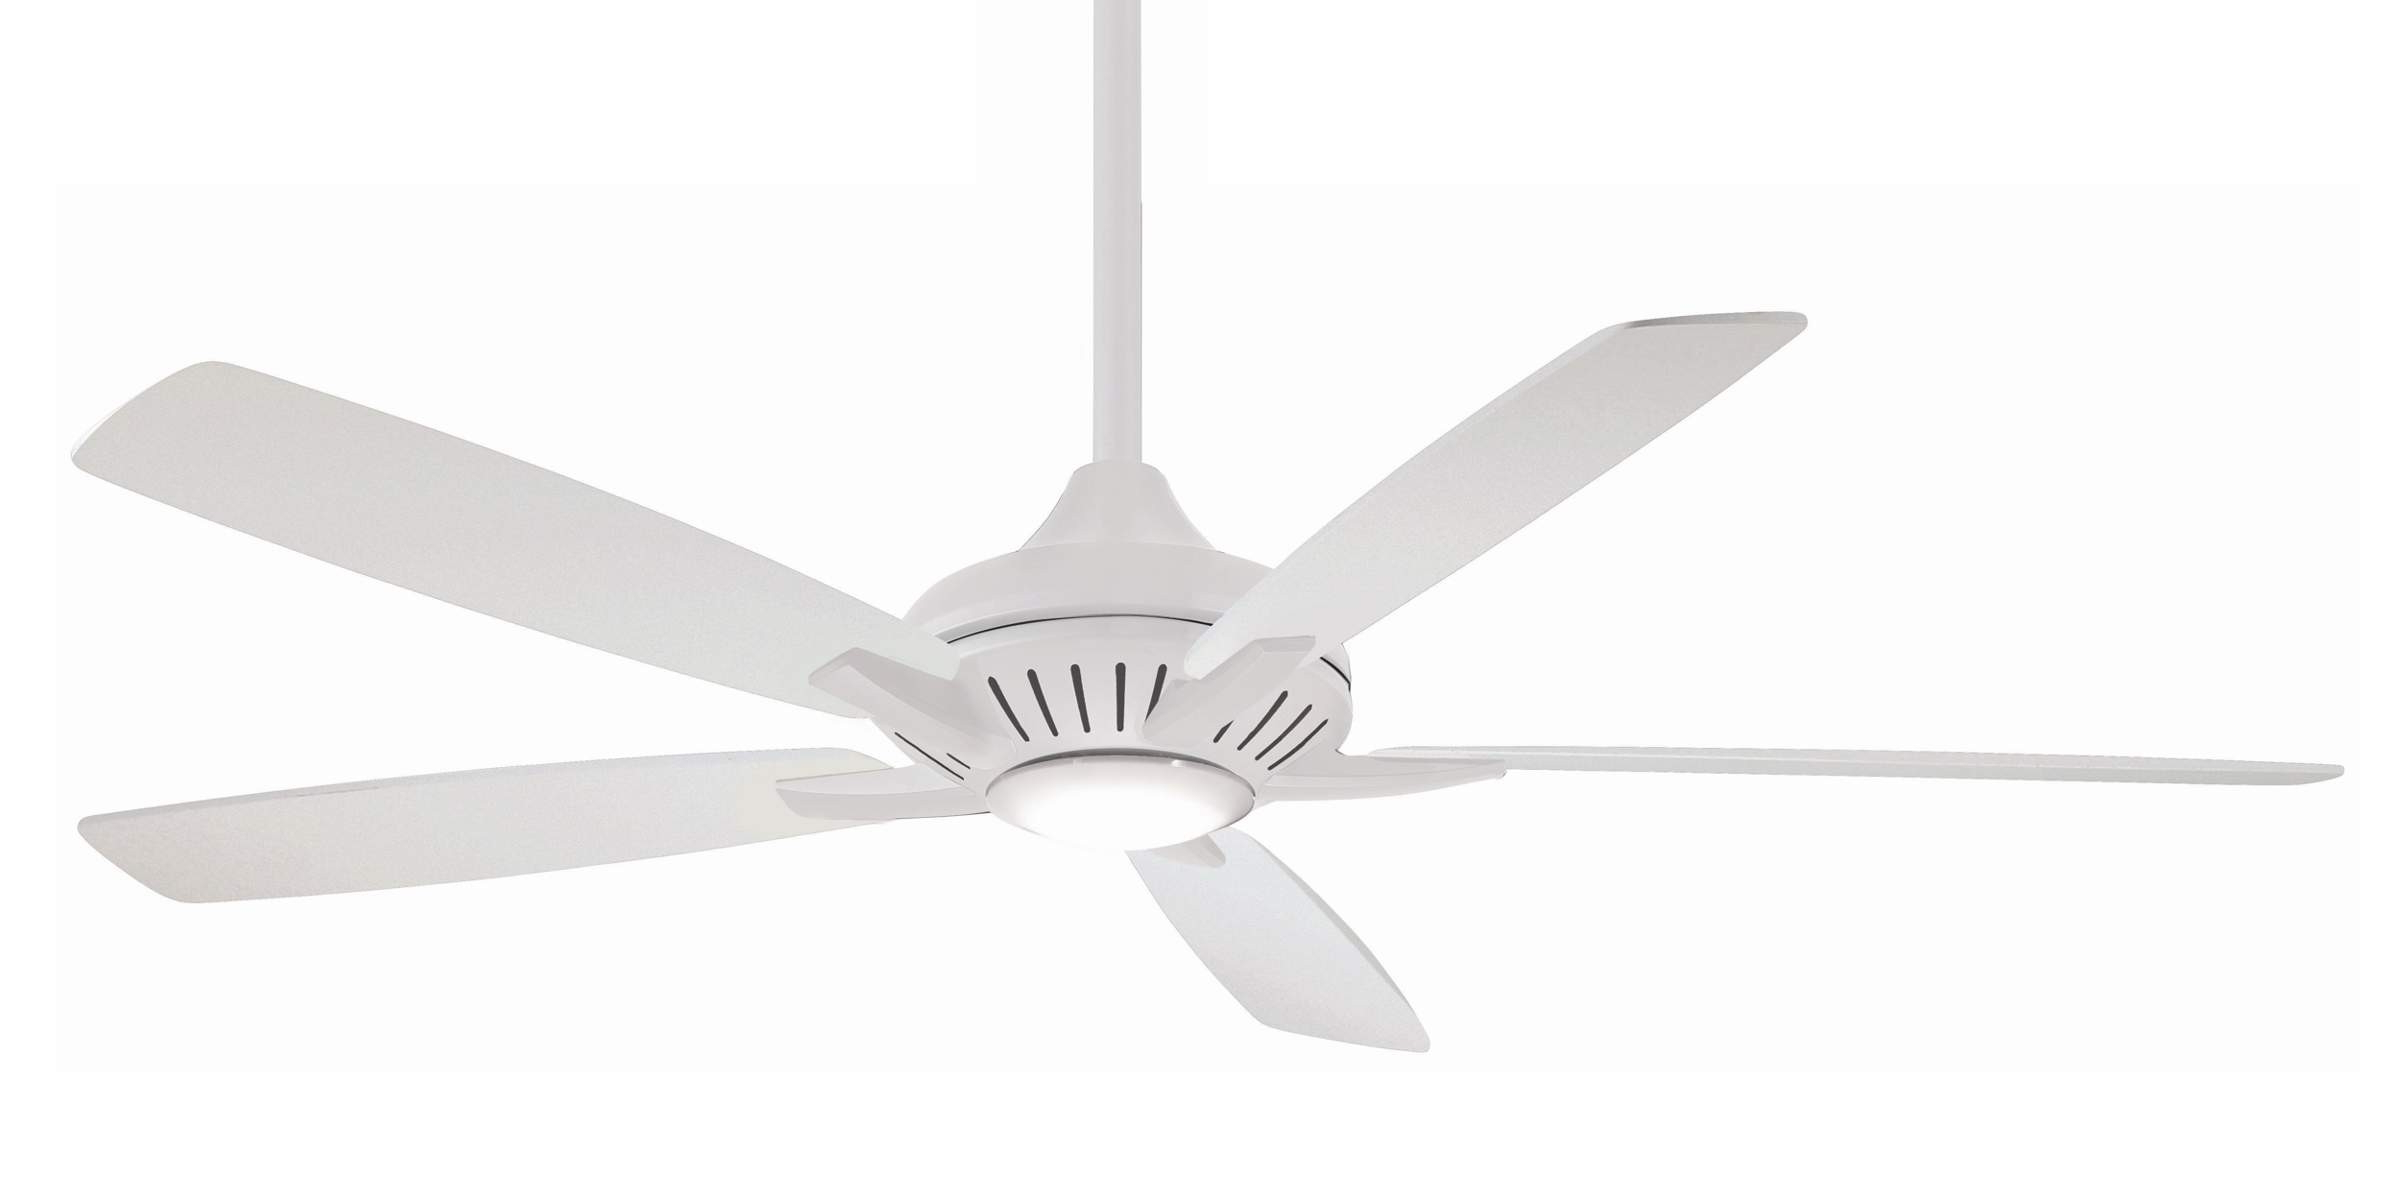 Dyno 5 Blade Ceiling Fans Intended For Most Current Minka Aire F1001 Wh 60 Inch Dyno Xl Ceiling Fan In White (View 6 of 20)